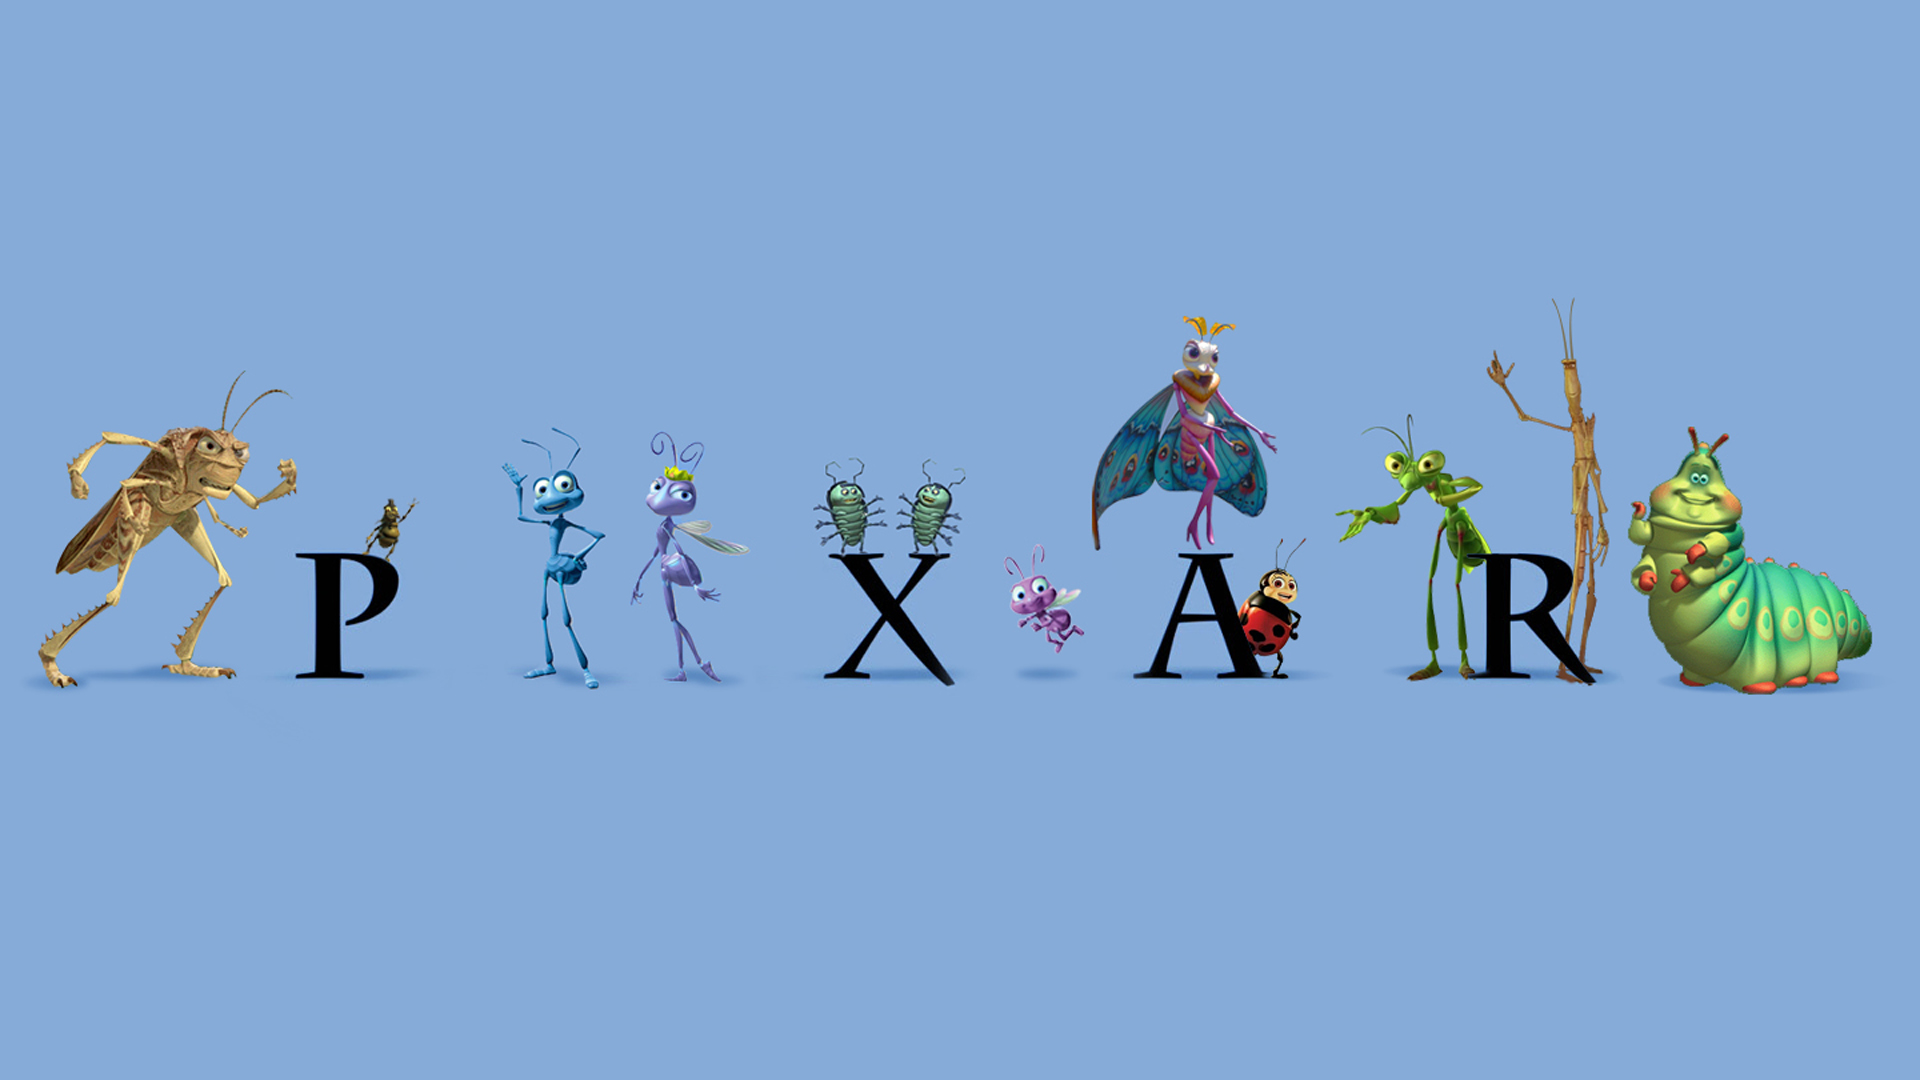 pixar up movie hd wallpapers wallpapersinhd 1920x1080